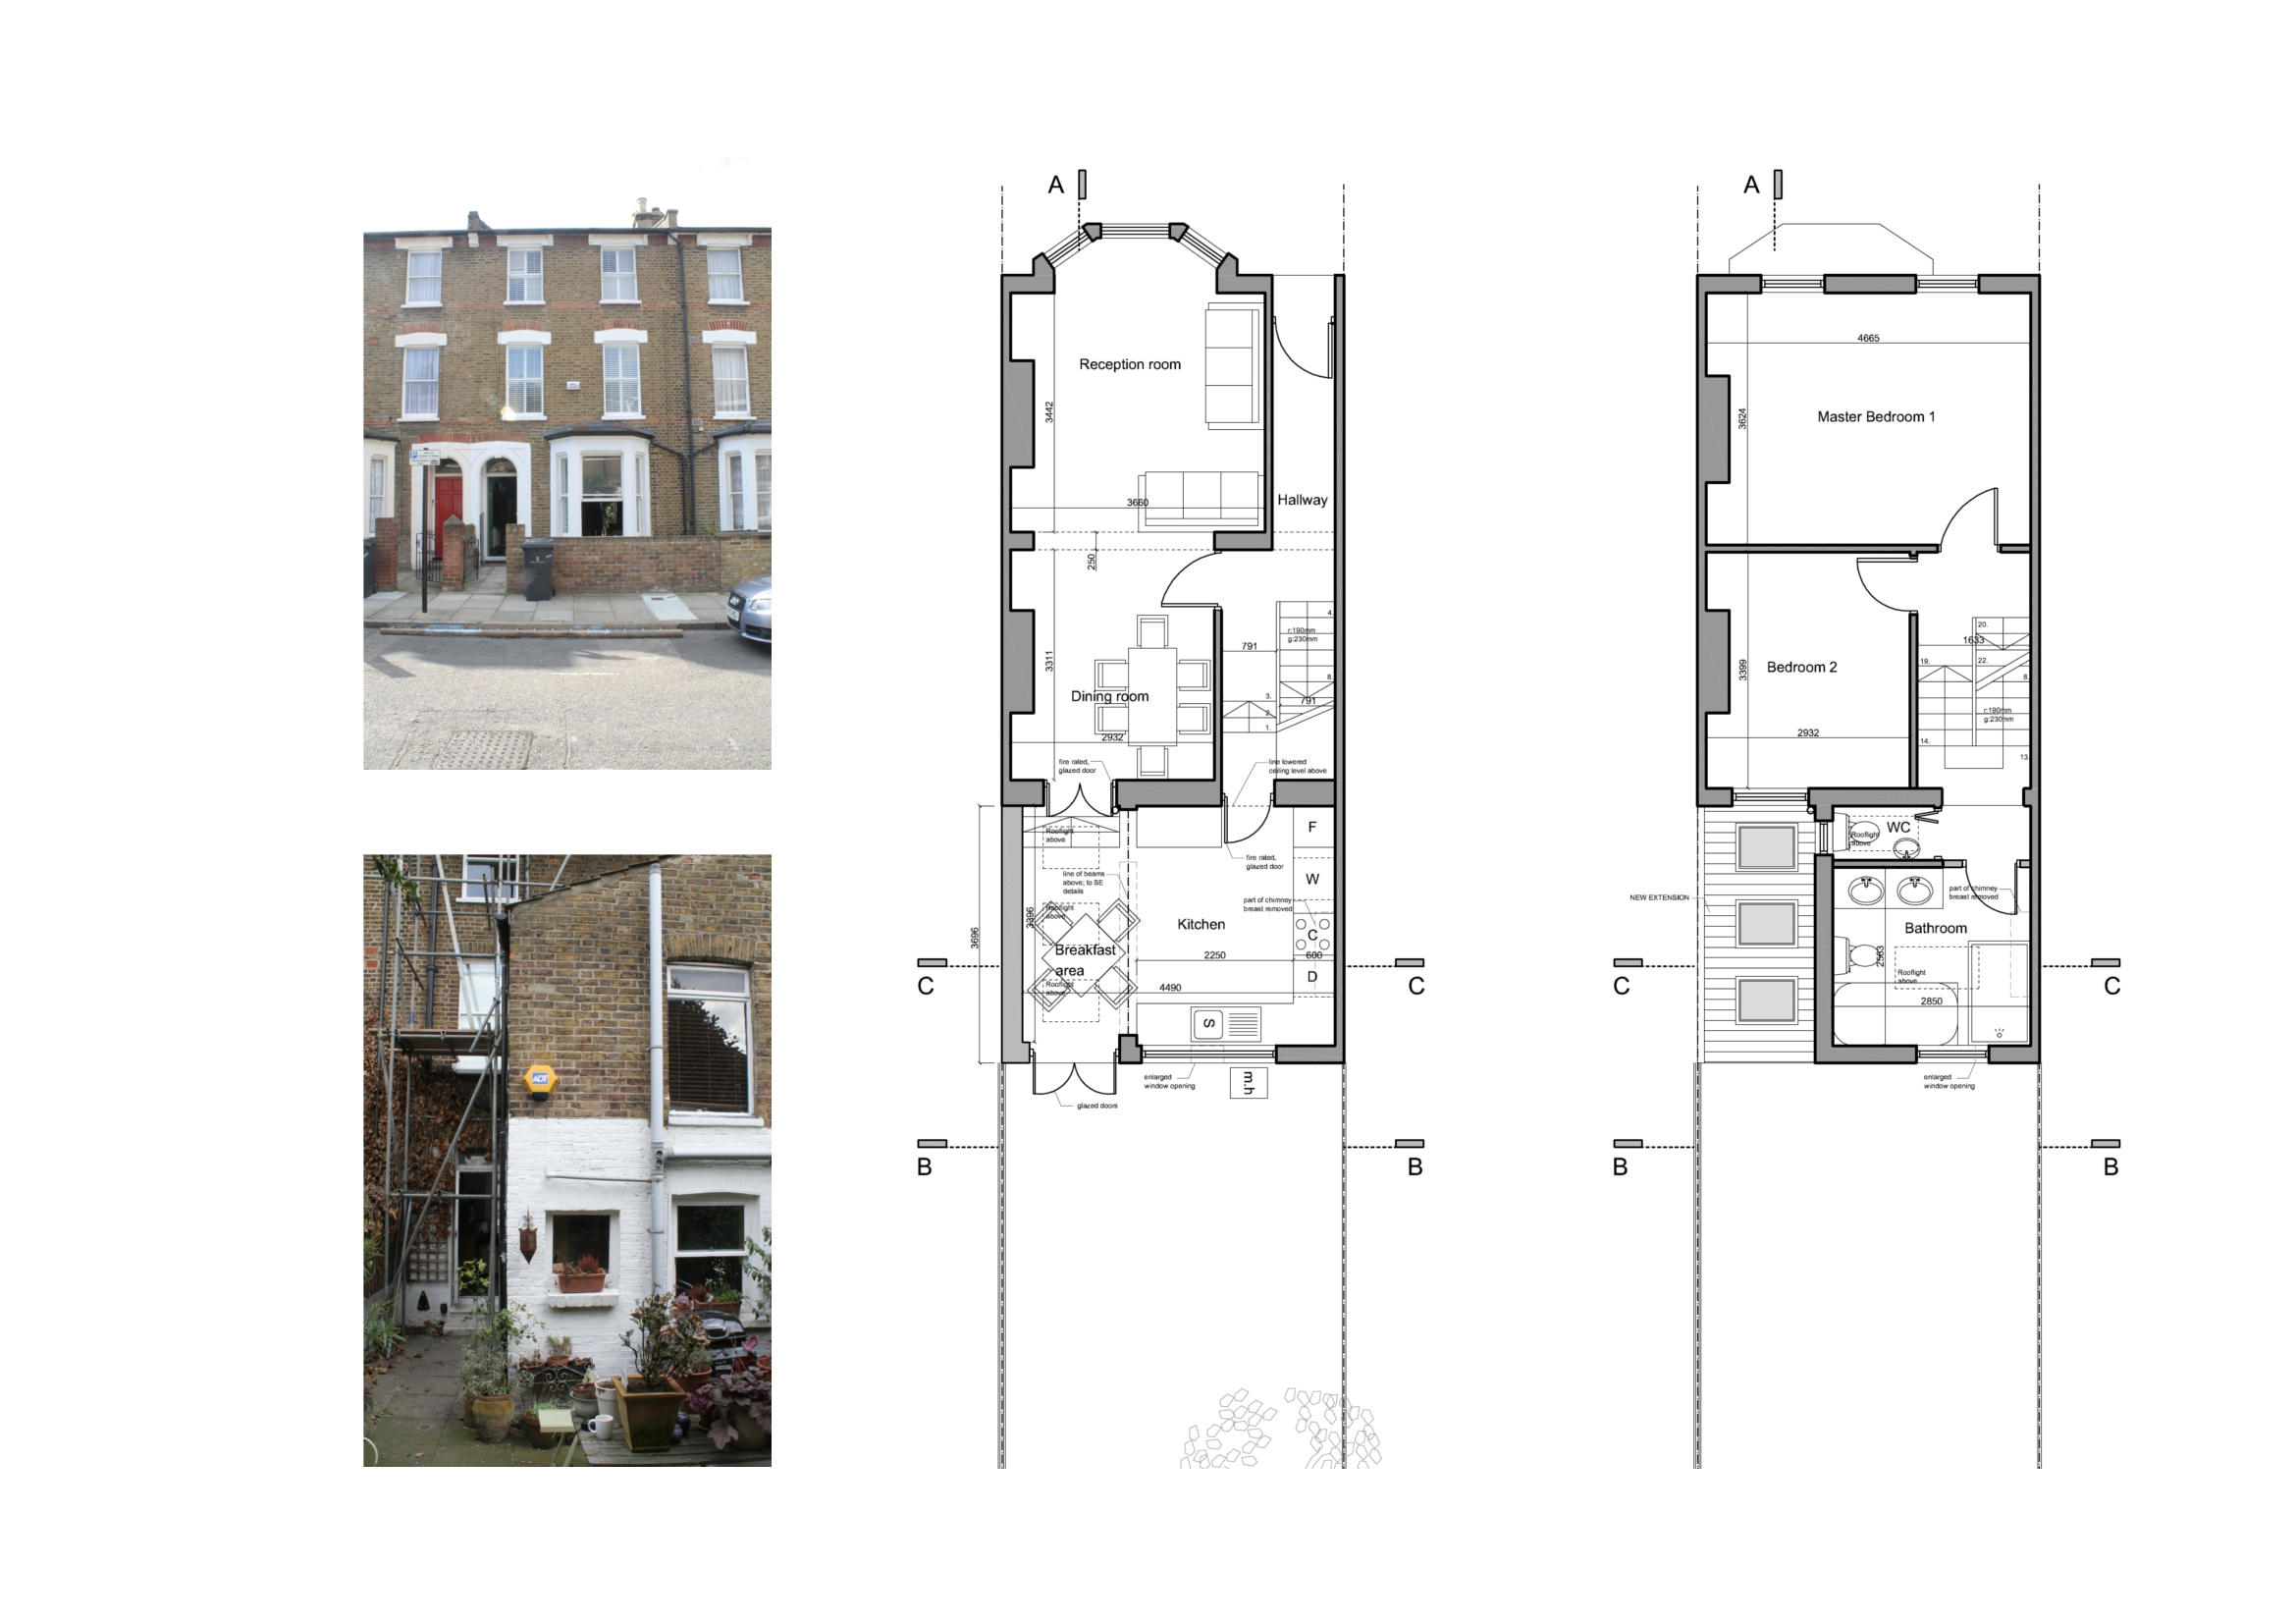 Architect Designed Kitchen Extension Clapham North Lambeth Sw4 as well Wooden Front Stairs Corridor House Flowing Space together with Deck Designs Ideas Pictures besides Rustic Home In Boulder further 562457440945238276. on london townhouse floor plans